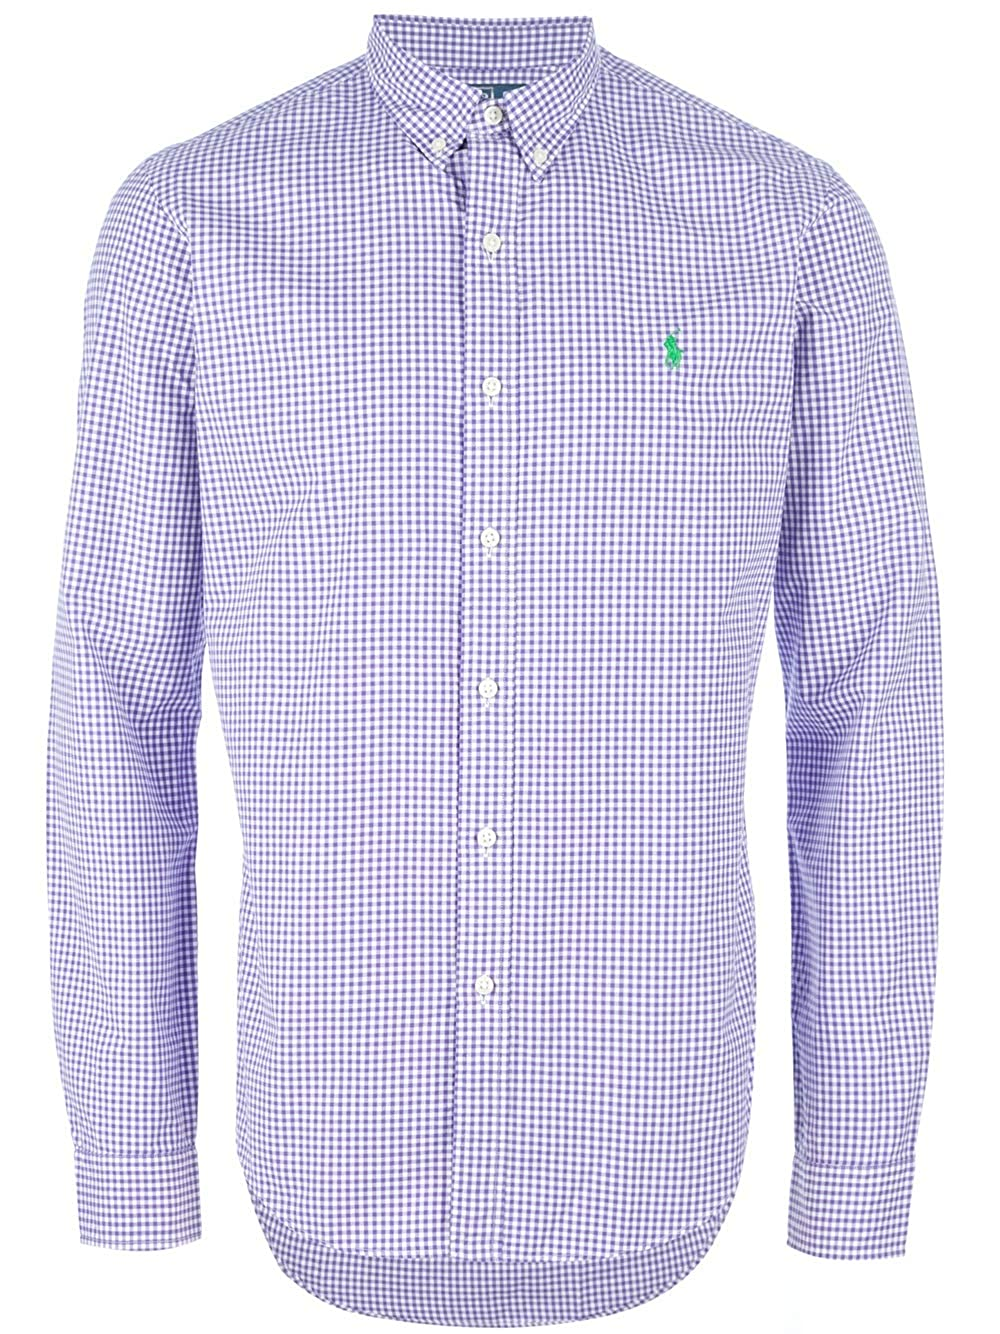 Polo Ralph Lauren Camisas Uomo Classic Fit (l, Purple): Amazon.es ...